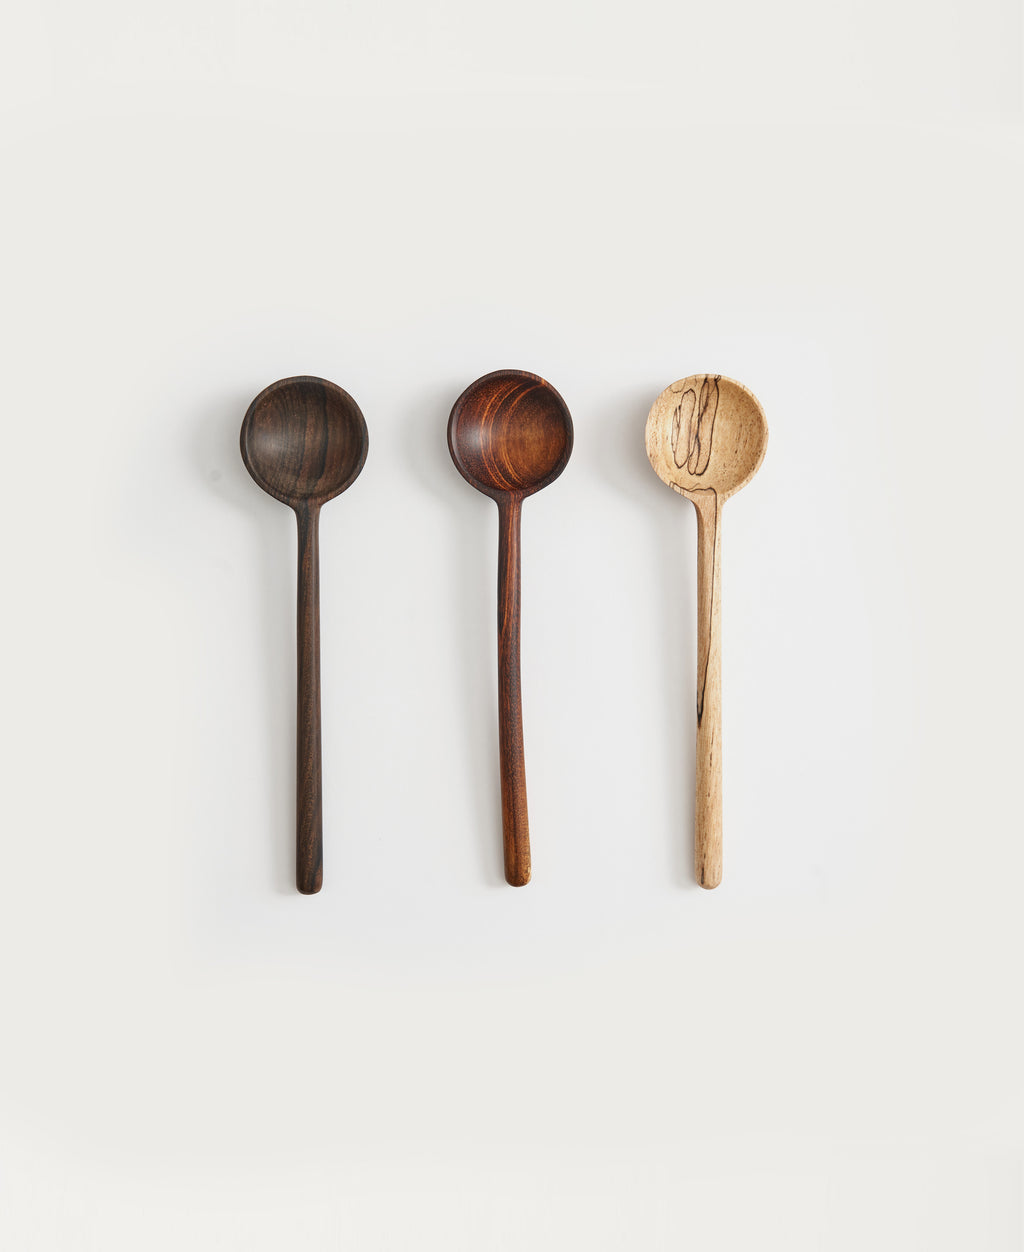 Small Tasting Spoons, Set of 3